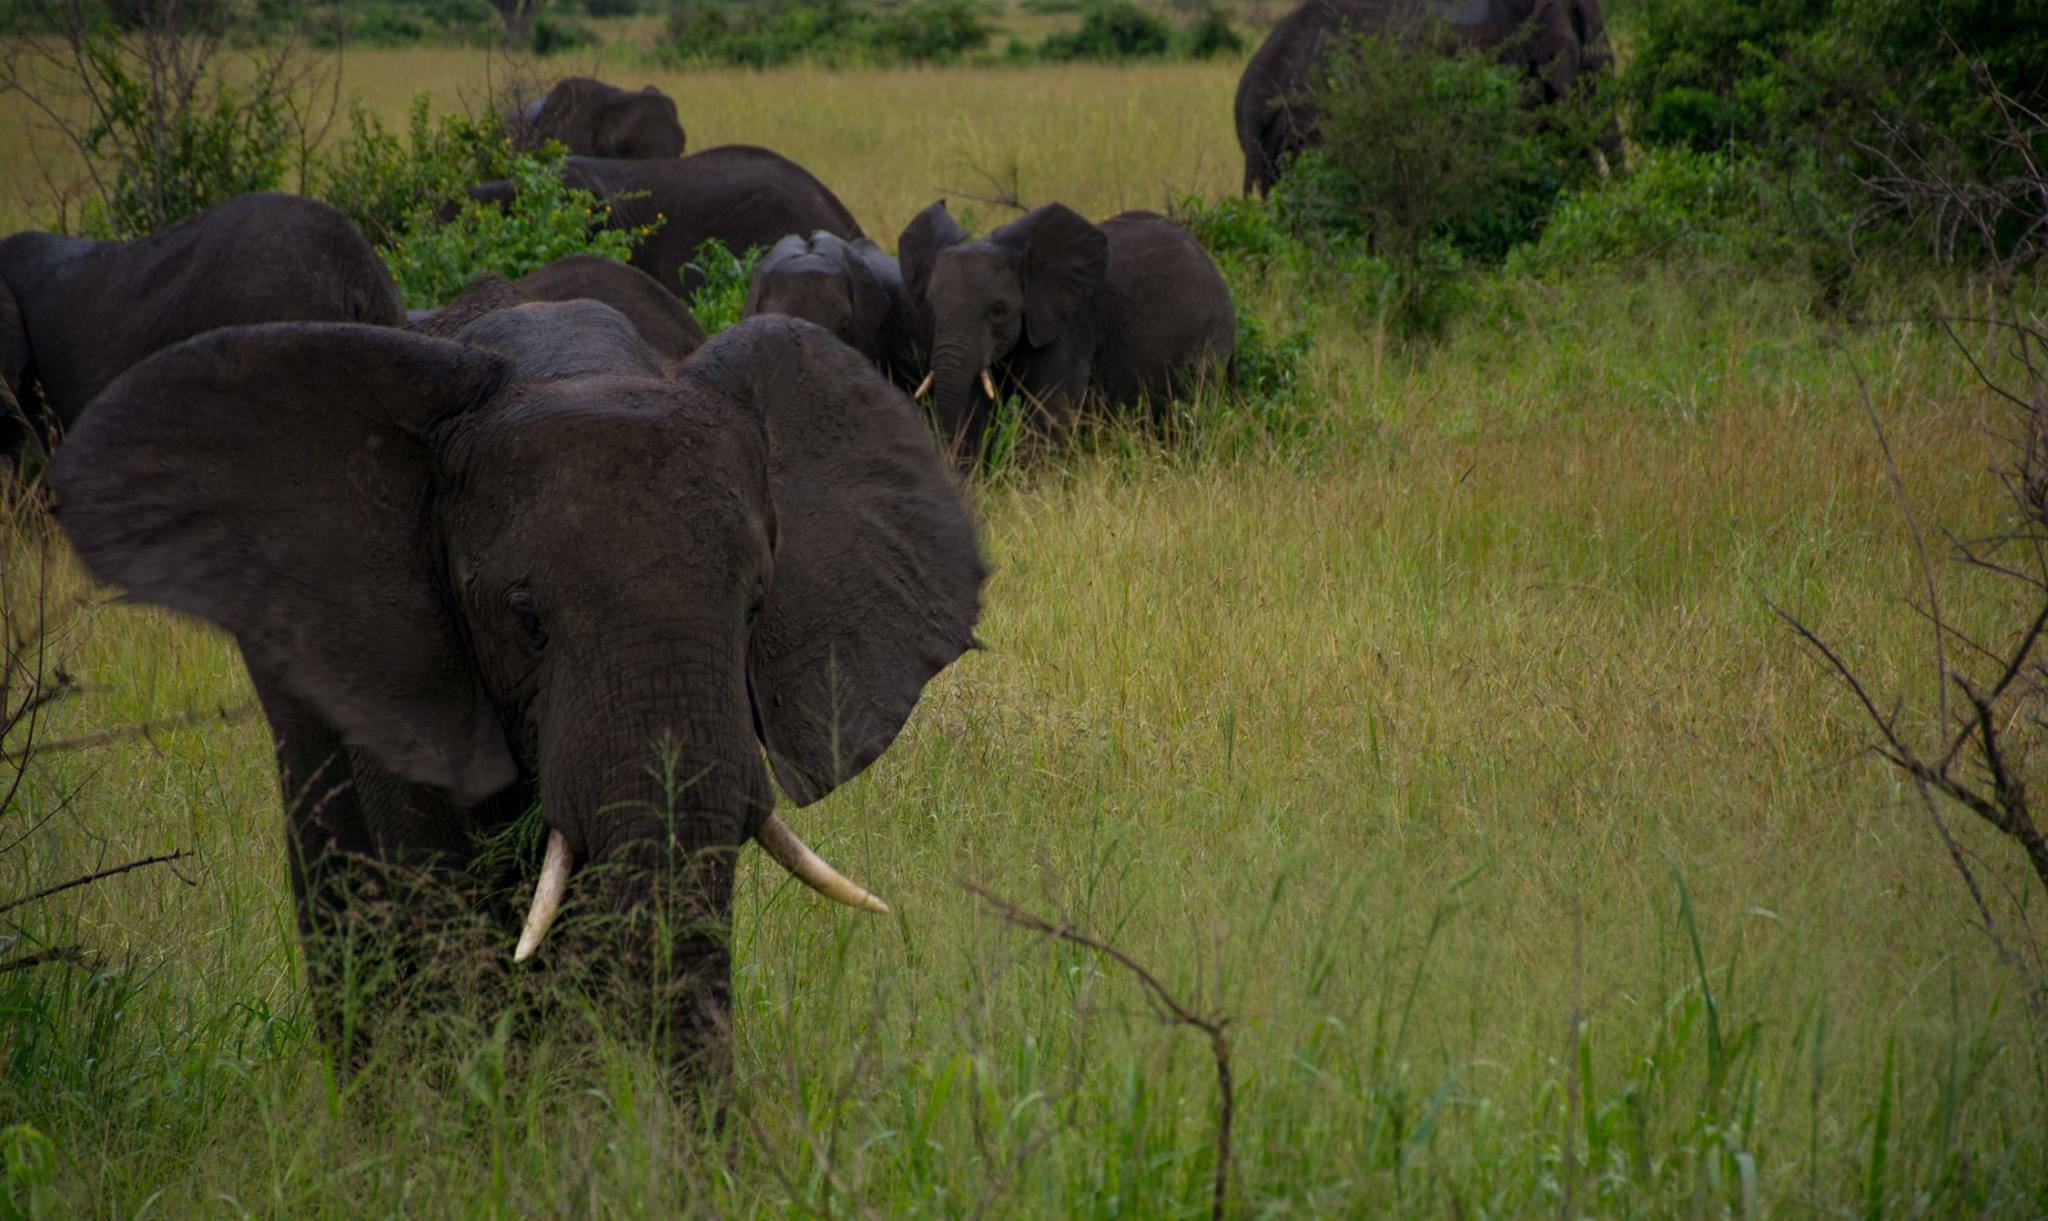 ...elephants, hippos, lions, crocodiles, warthogs and more. OR you can choose to...